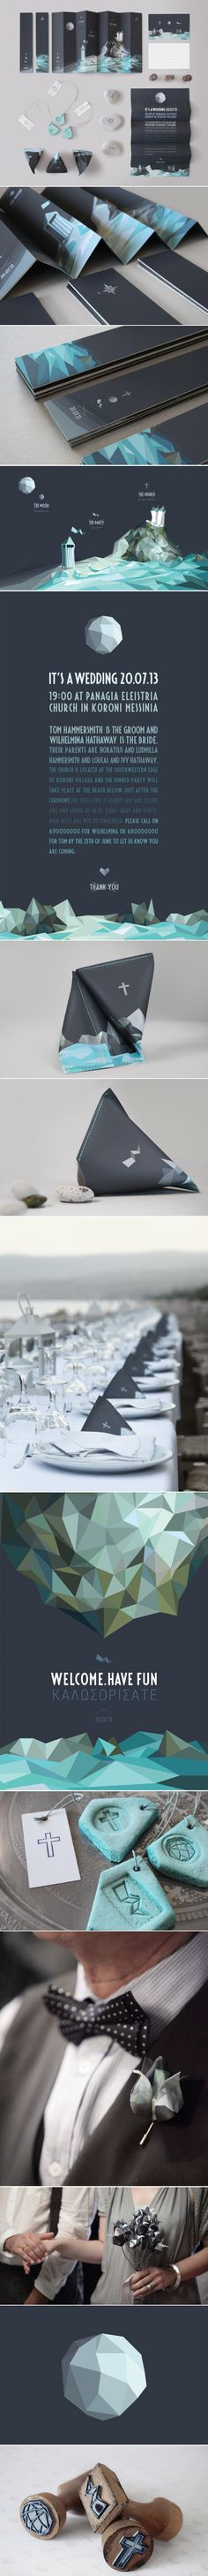 THE KORONI WEDDING. This is beautiful as well as clever #wedding #invitation #packaging PD